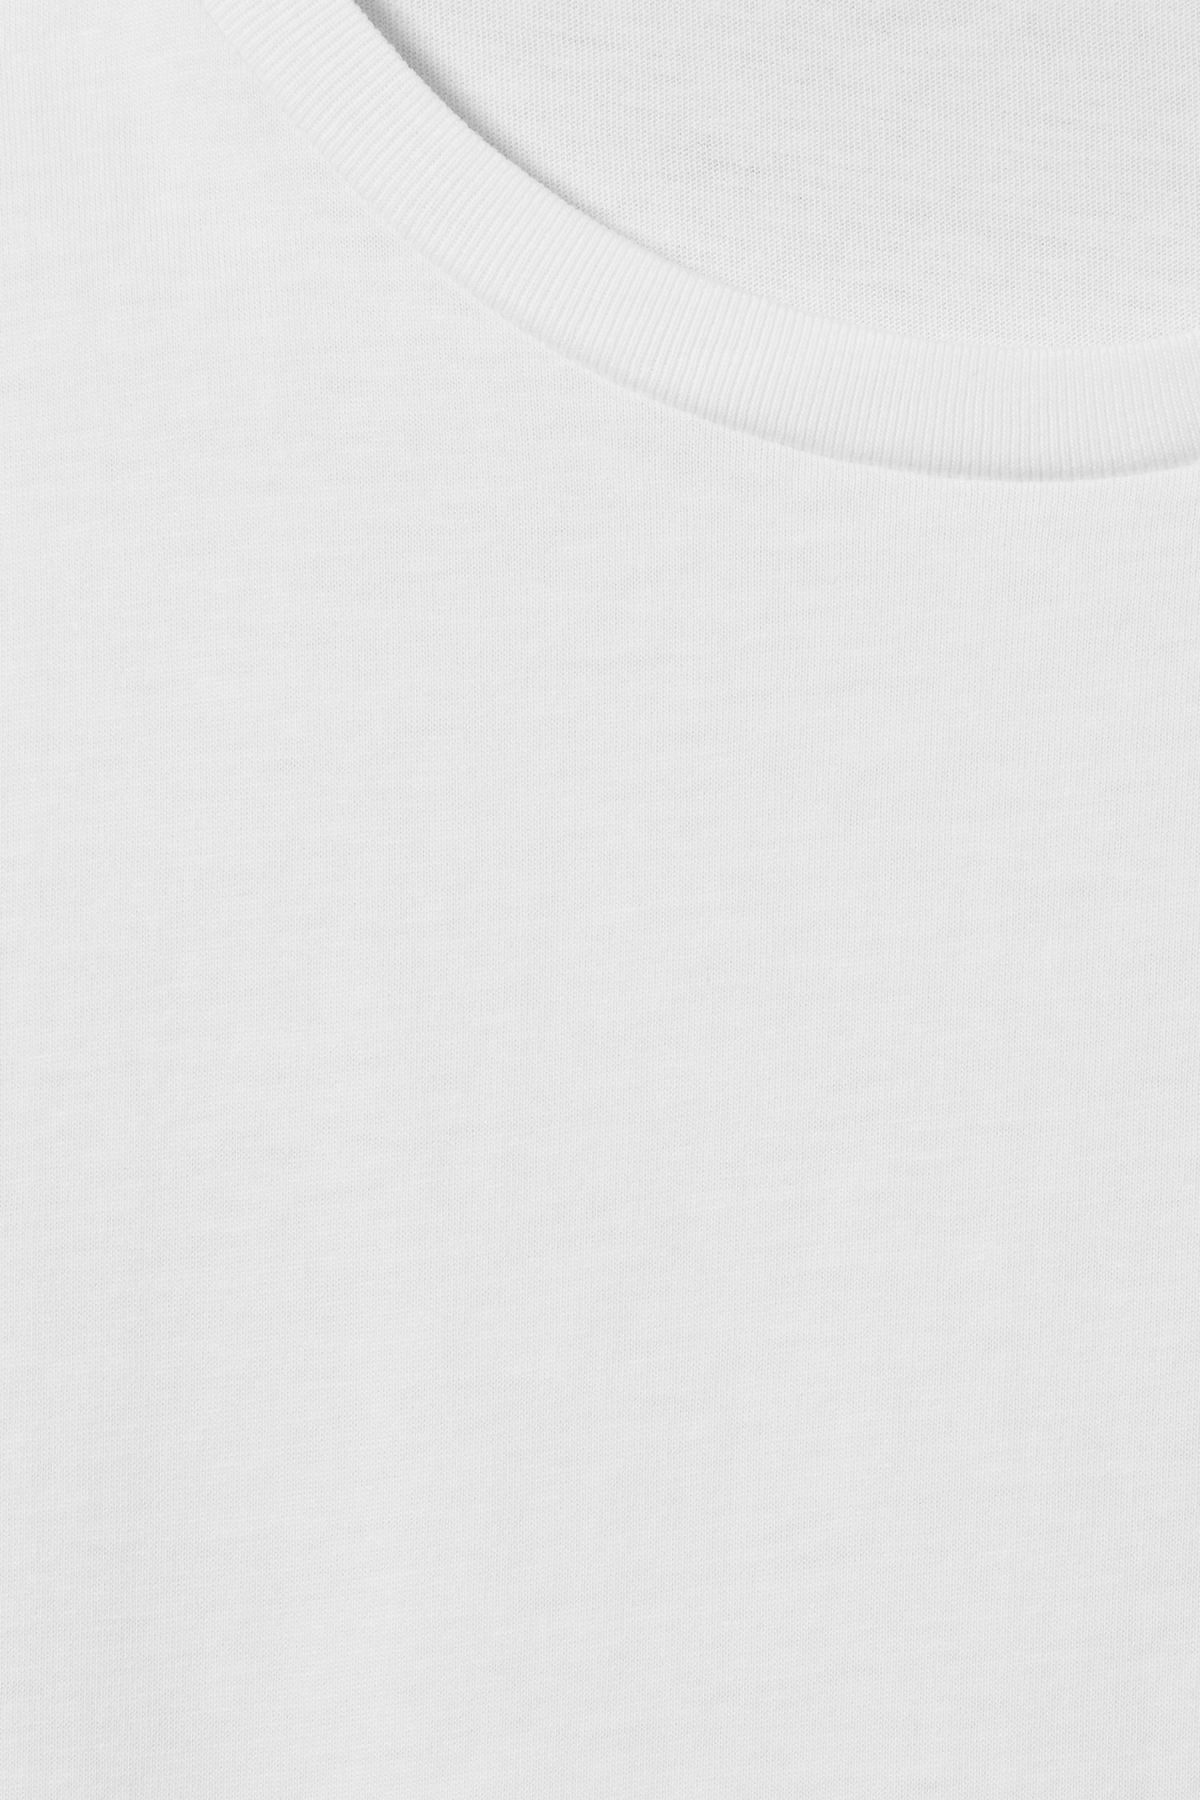 Detailed image of Weekday alex t-shirt in white